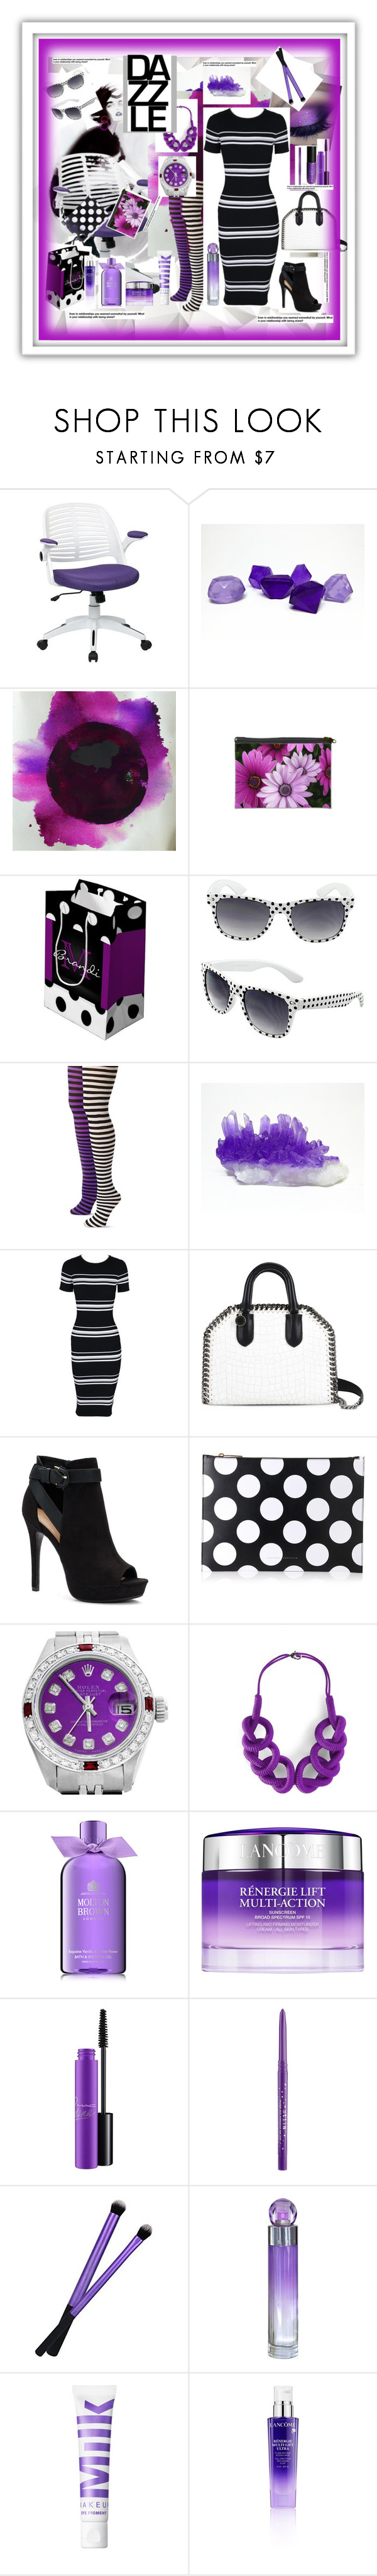 """""""Beat the clock"""" by yvonne1406 ❤ liked on Polyvore featuring H&M, AveSix, Music Legs, MINKPINK, STELLA McCARTNEY, Apt. 9, Victoria Beckham, Rolex, ShoeDazzle and Molton Brown"""